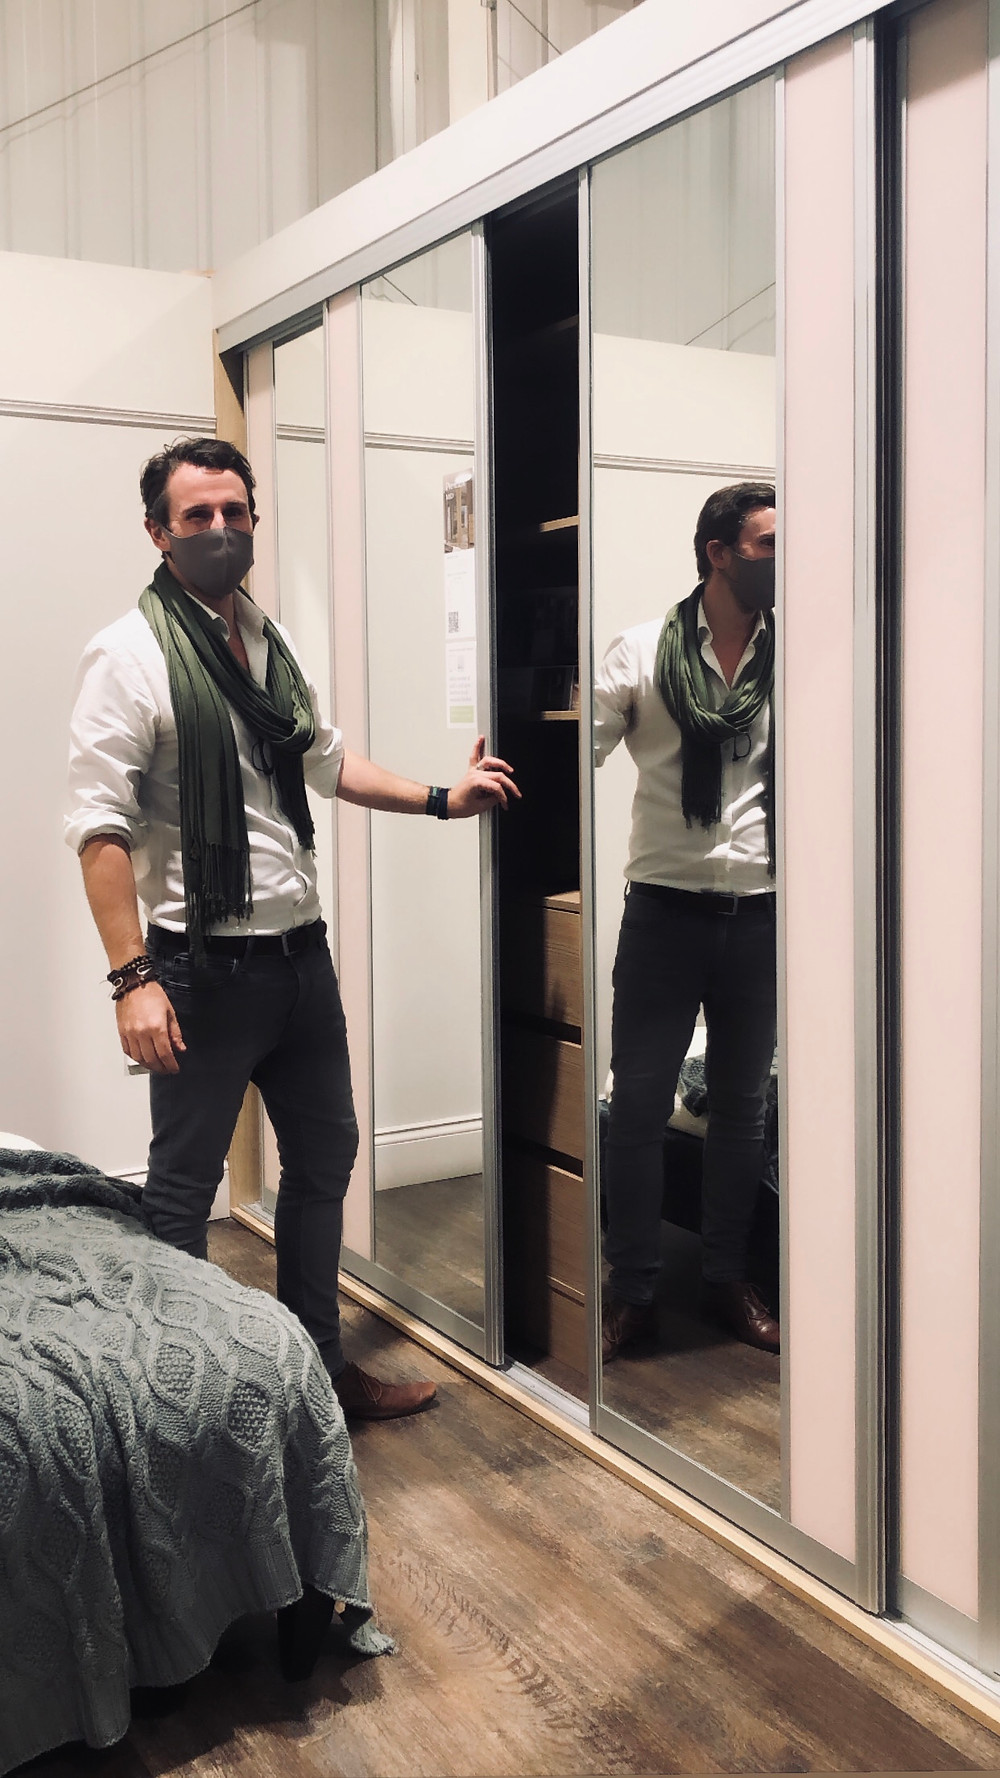 Image shows lead designer in green scarf opening sliding wardrobe